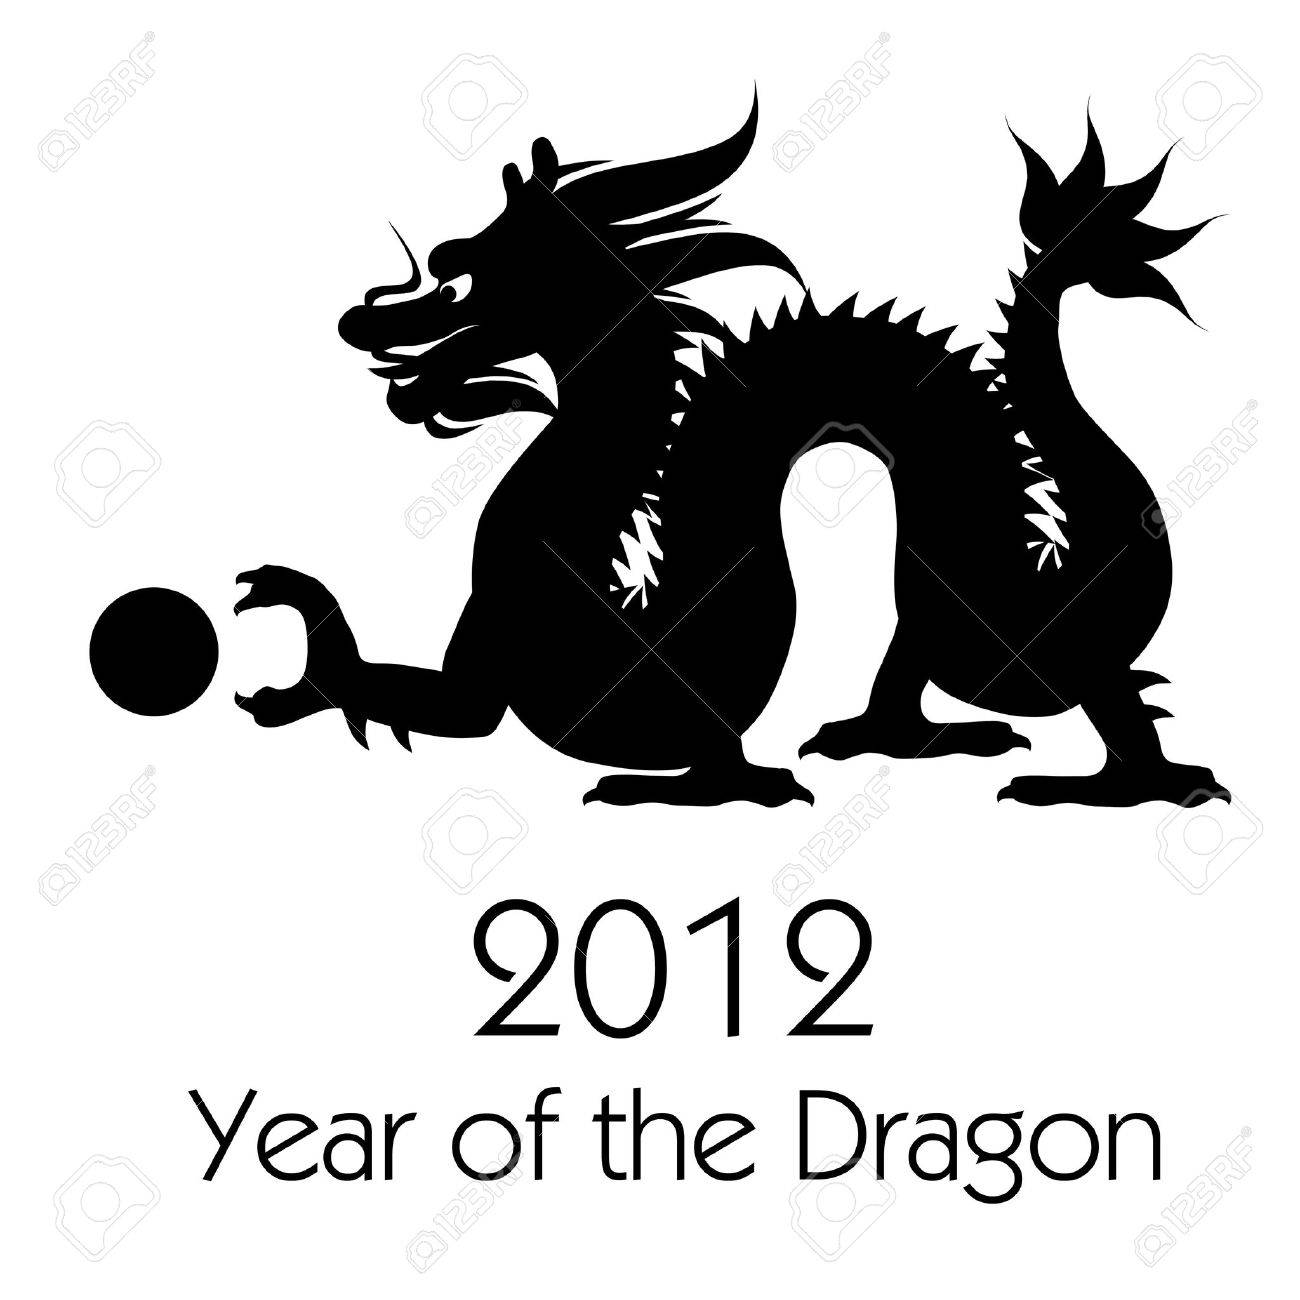 Chinese New Year of the Dragon 2012 Black White Clip Art.